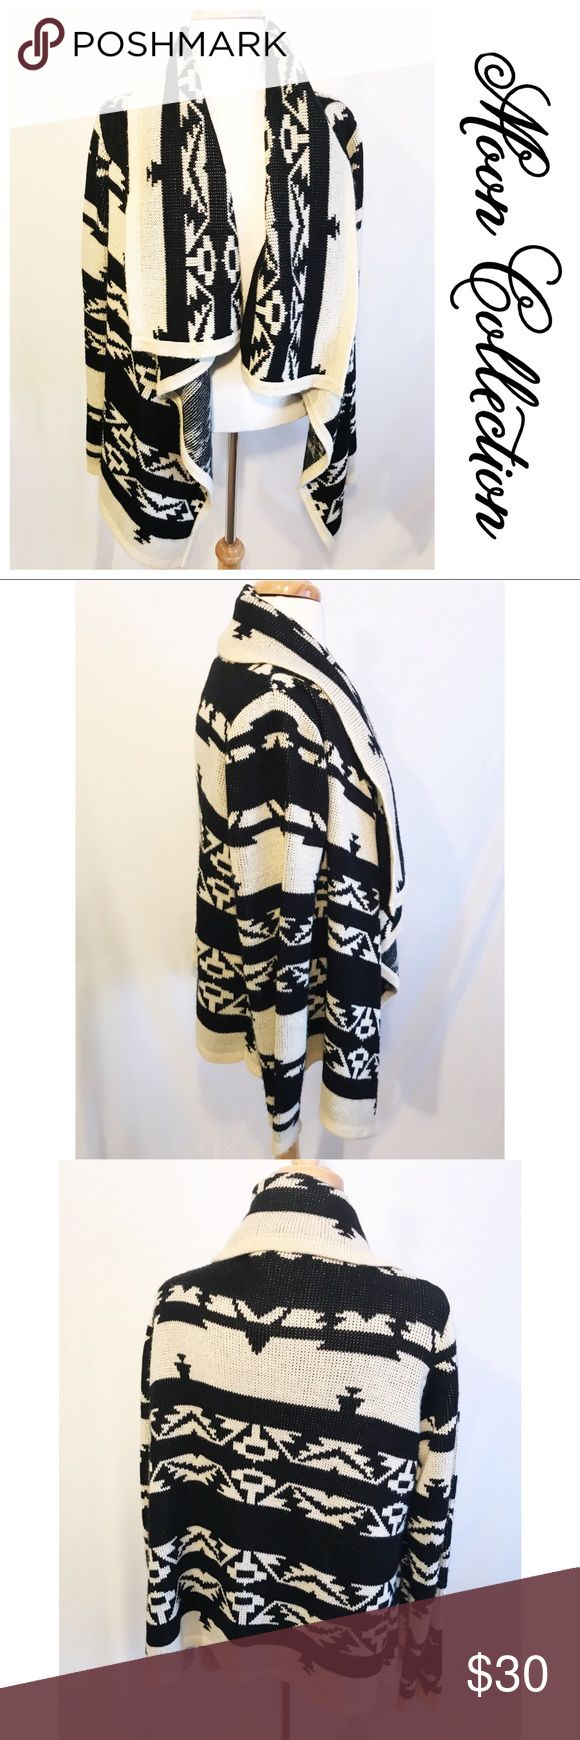 Moon Collection Cardigan Awesome cream and black tribal print cardigan.  Heavier knit like a nice cozy blanket.  Long sleeves and wide foldover collar and lapels.  Great with leggings and boots.  Wonderful item to add to your winter collection Sweaters Cardigans